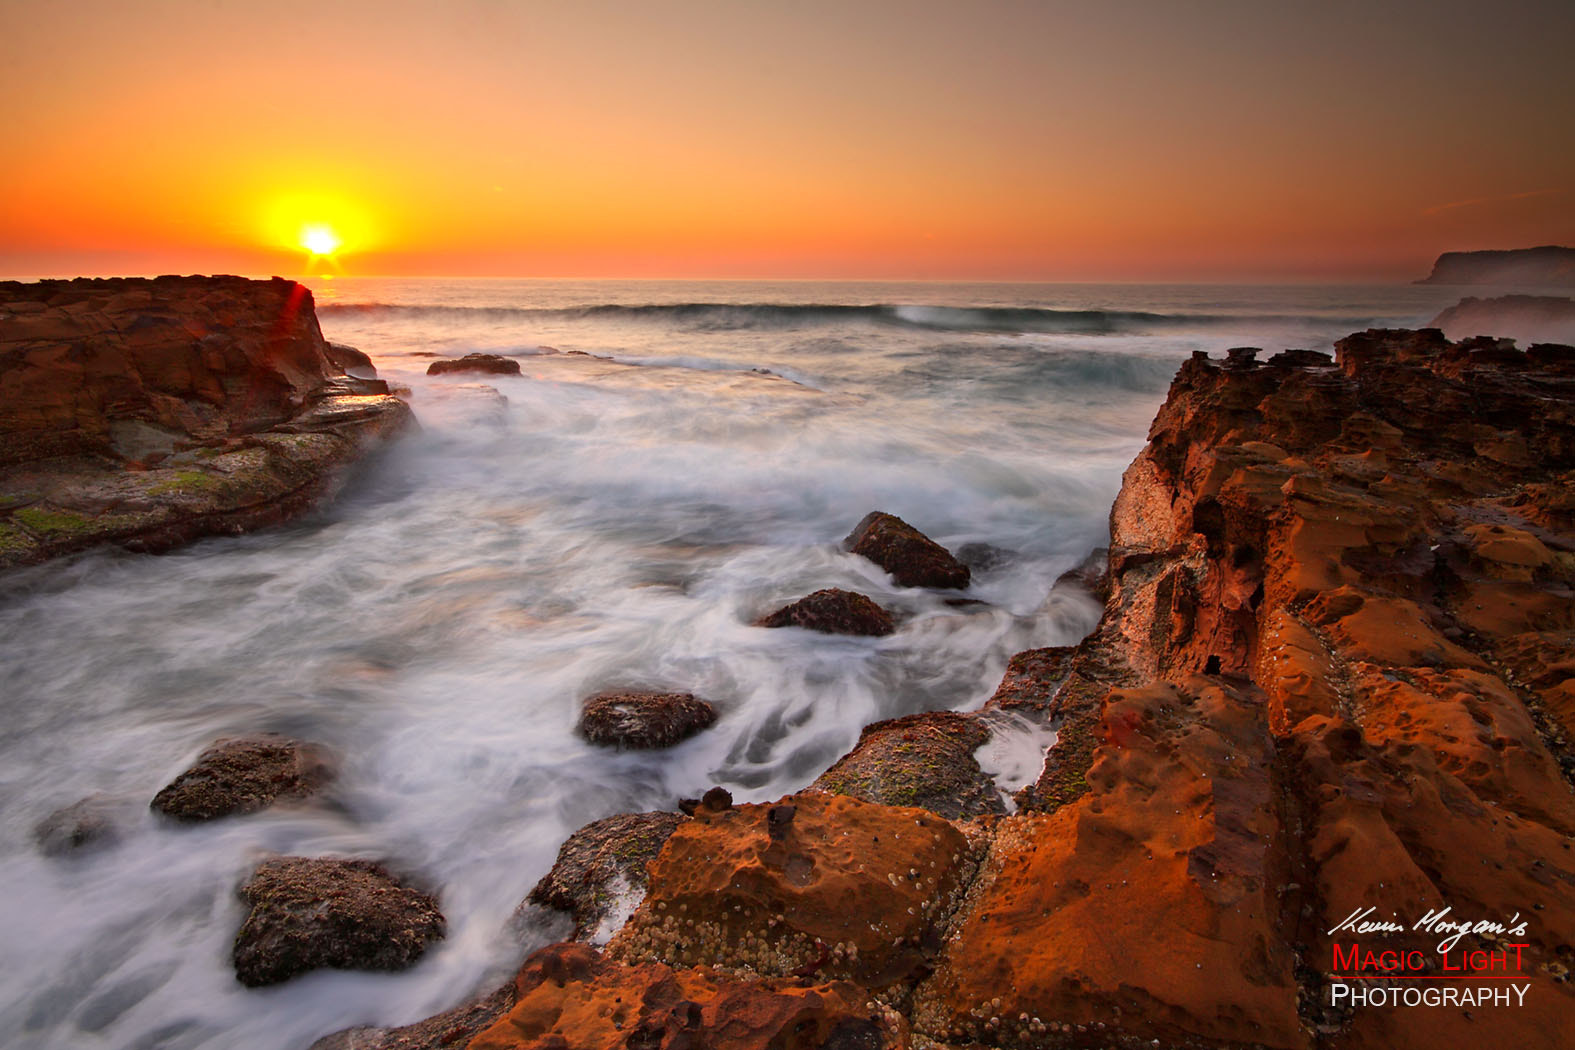 Photograph North Avoca Sunrise #1 by Kevin Morgan on 500px